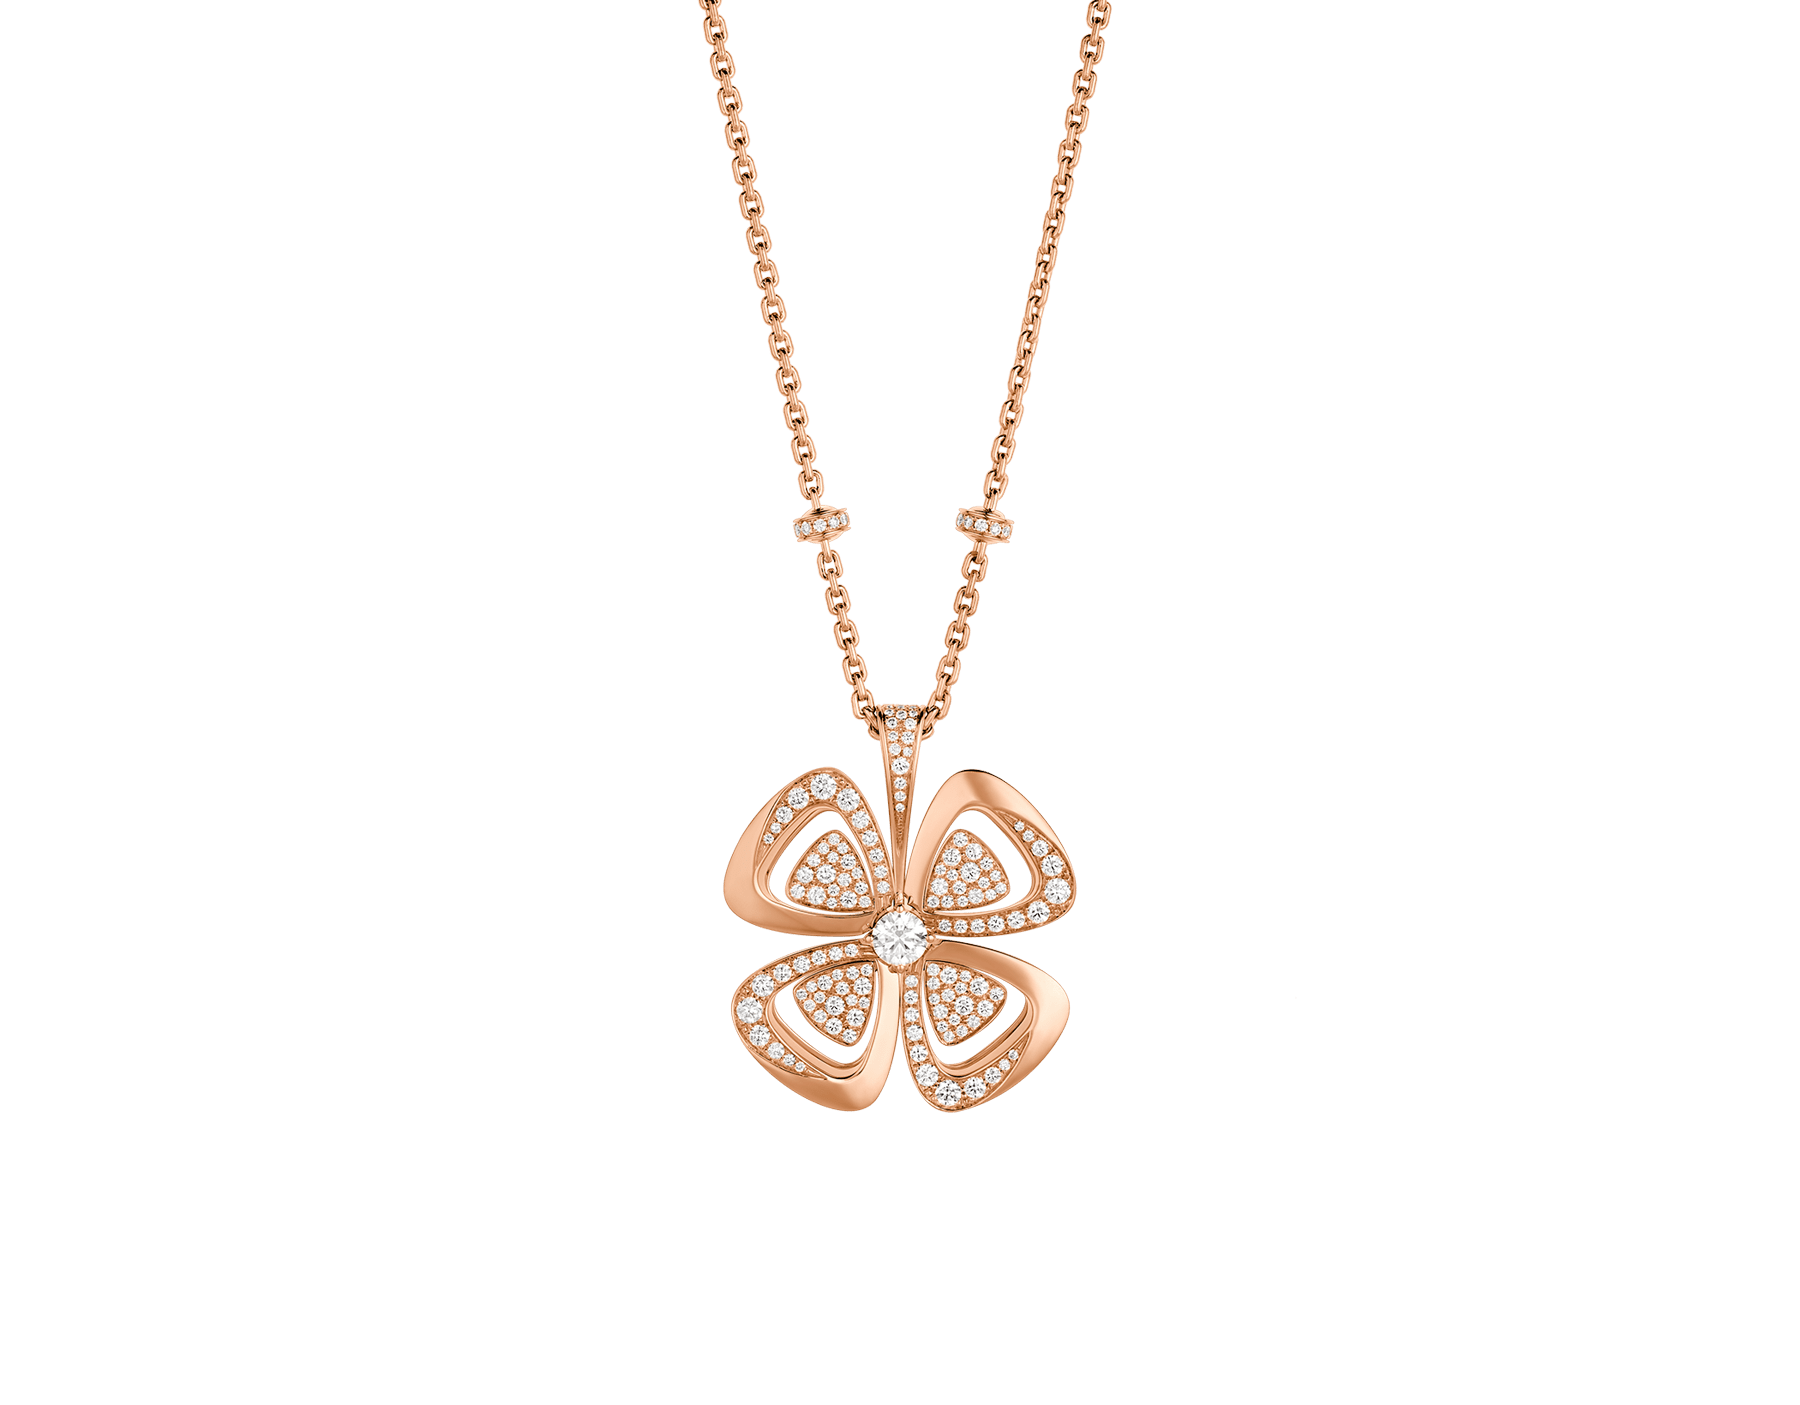 Fiorever 18 kt rose gold necklace set with a central round brilliant-cut diamond (0.70 ct) and pavé diamonds (3.55 ct) 357218 image 1